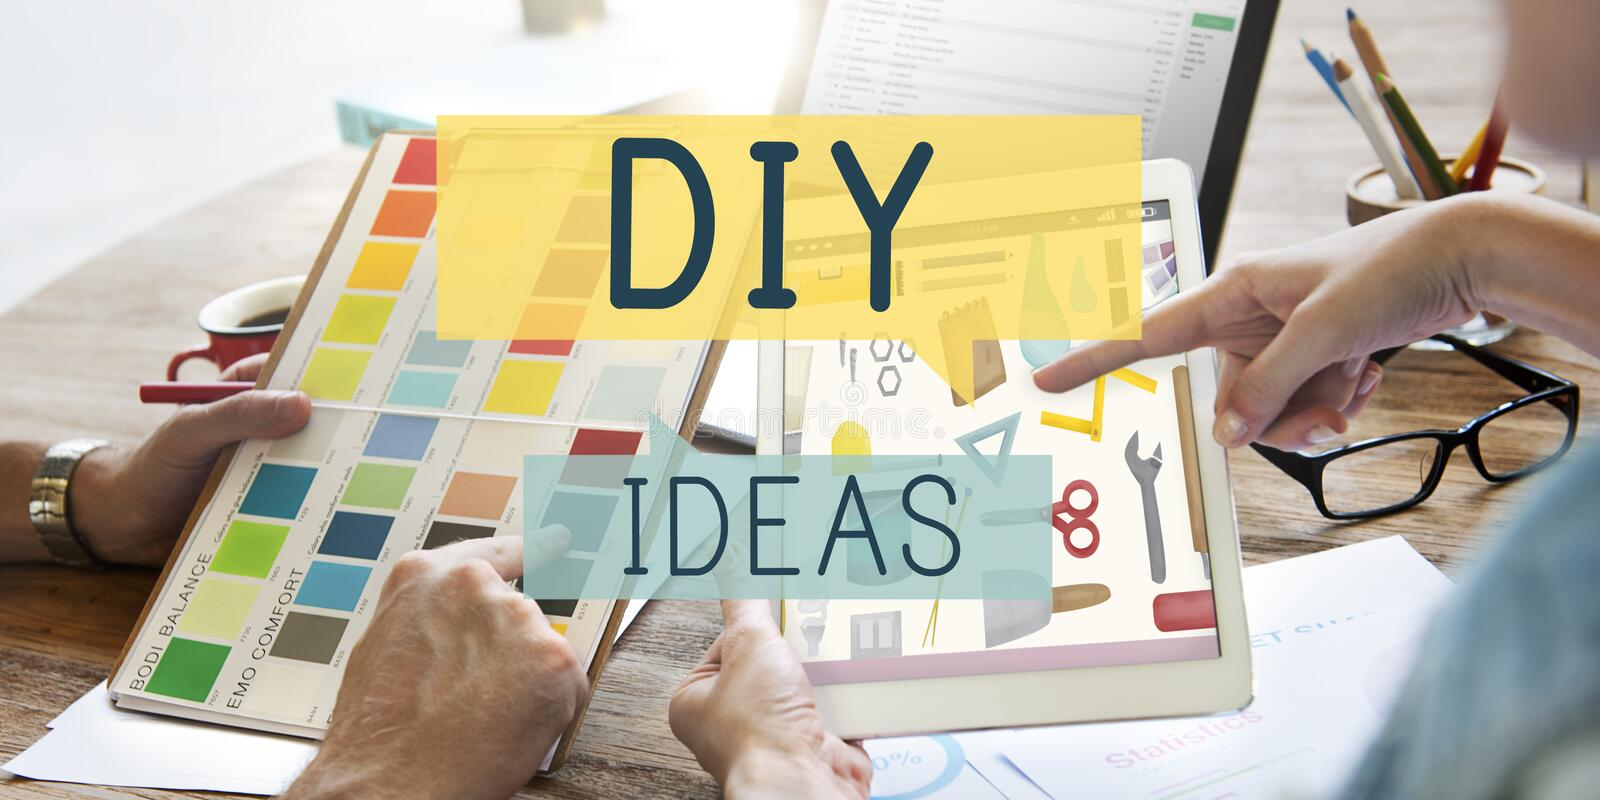 Do it yourself project graphics concept stock illustration do it yourself project graphics concept solutioingenieria Choice Image